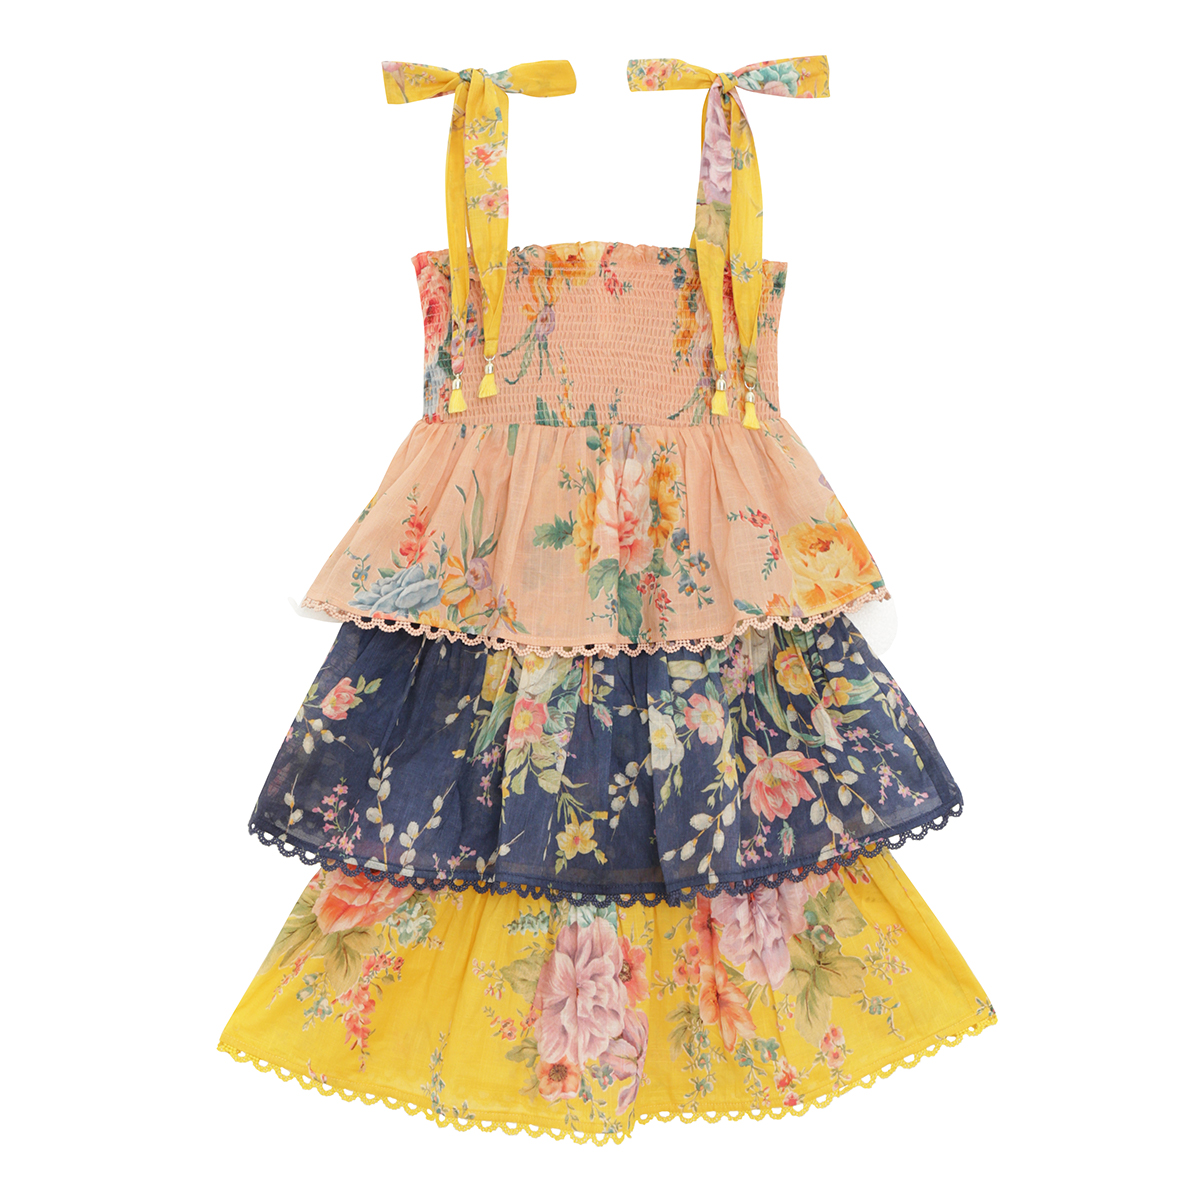 Zimmermann Zinnia Shirred Tiered Dress Spliced FW19